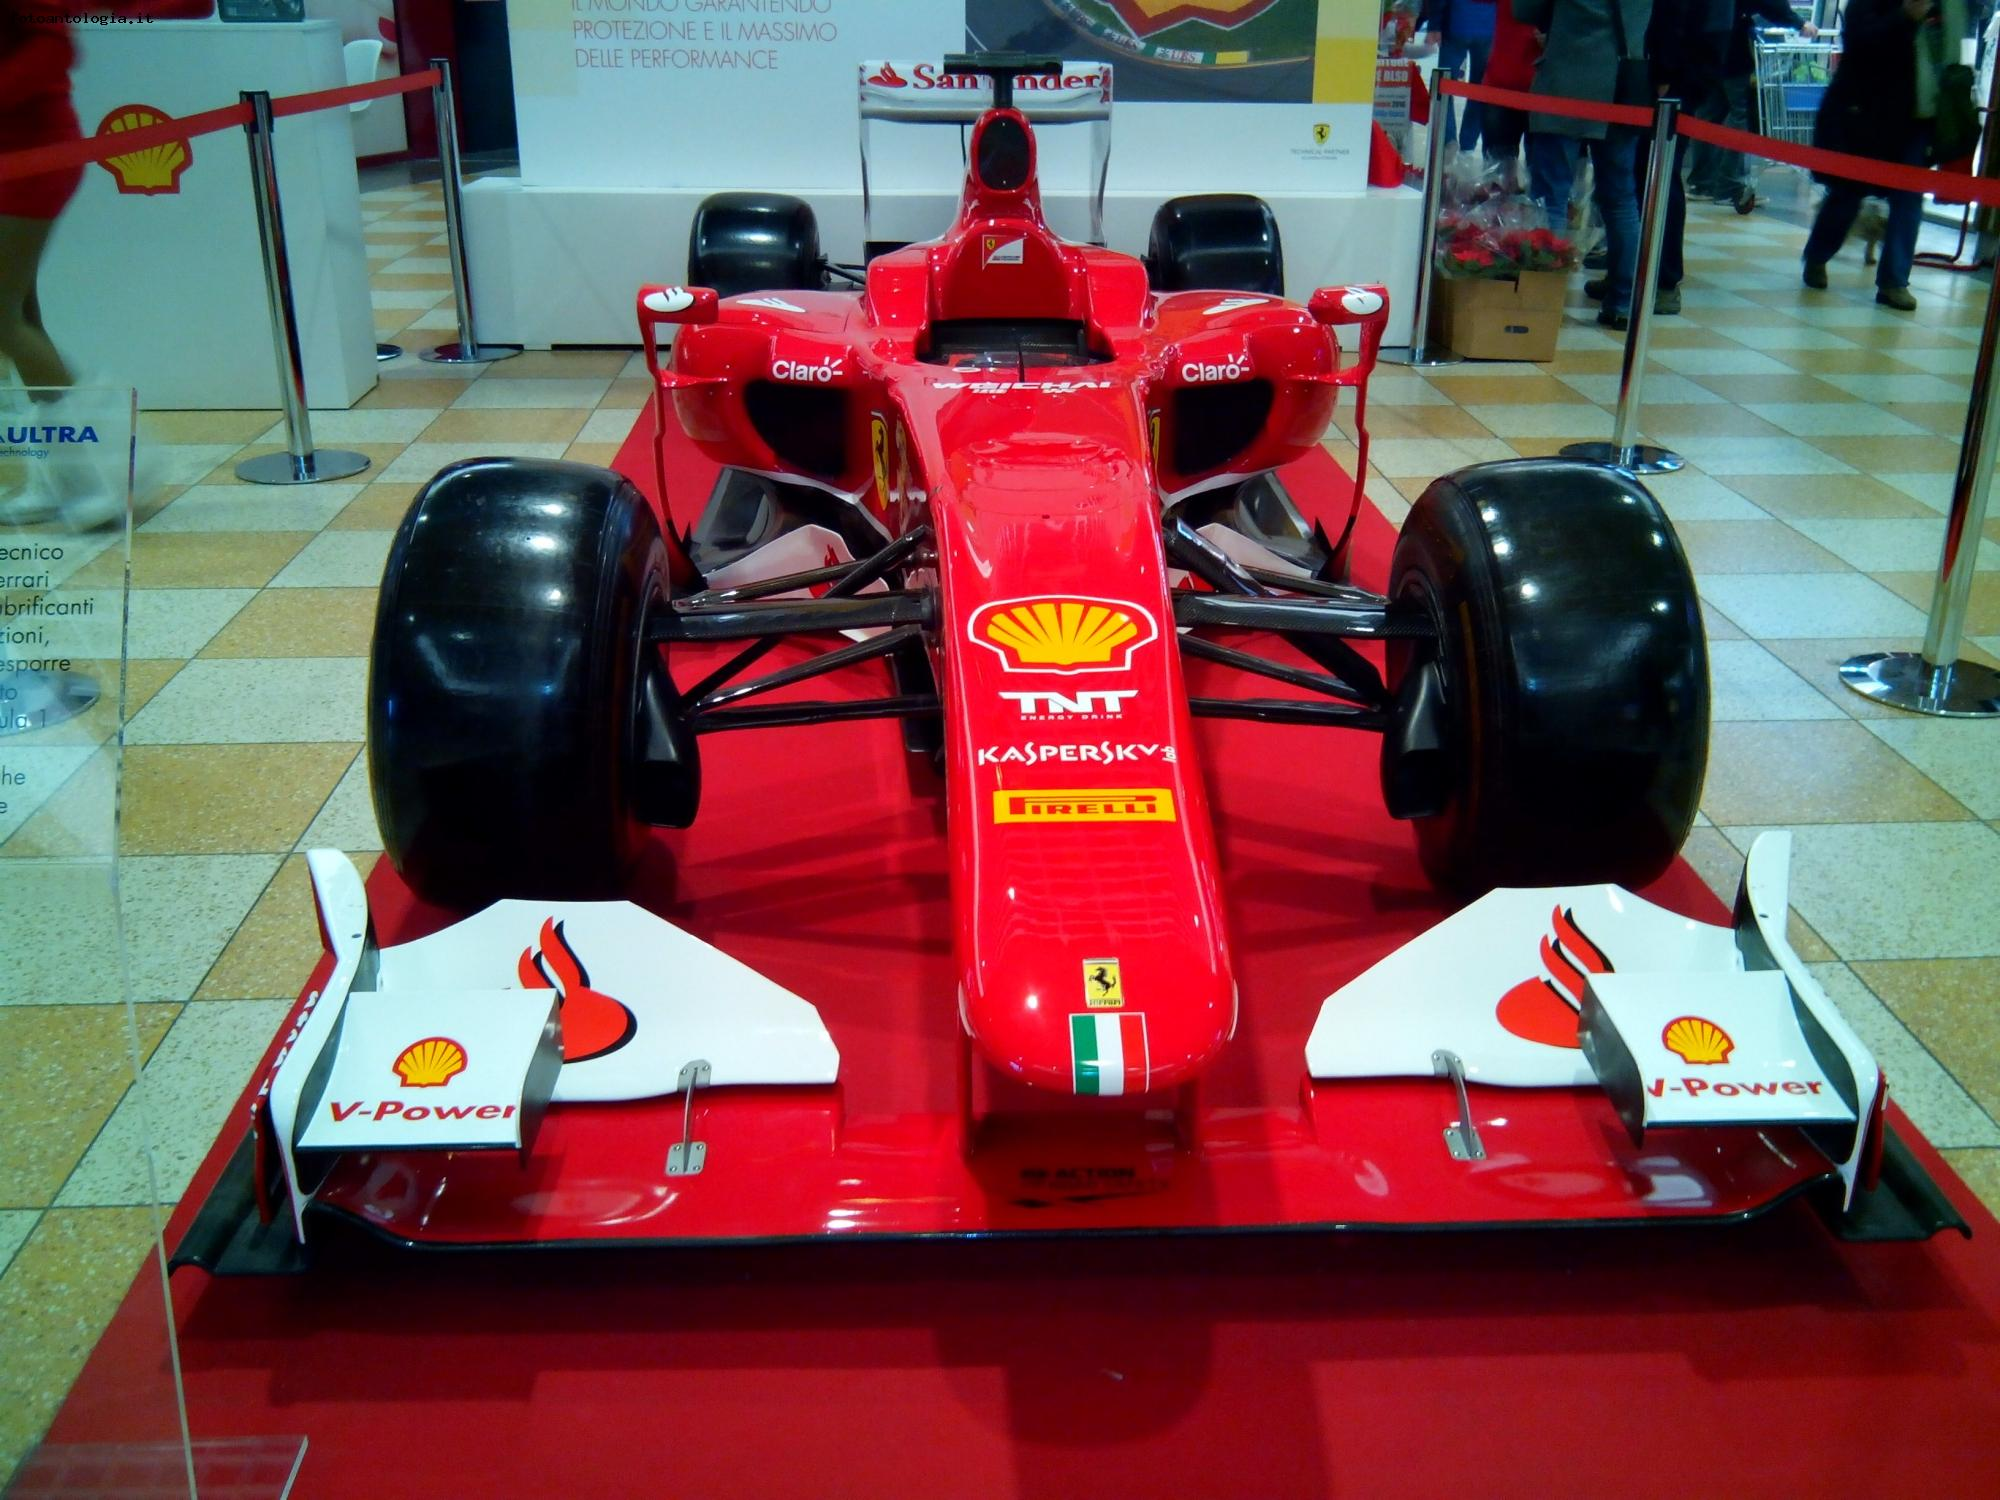 Milano, showroom Ferrari